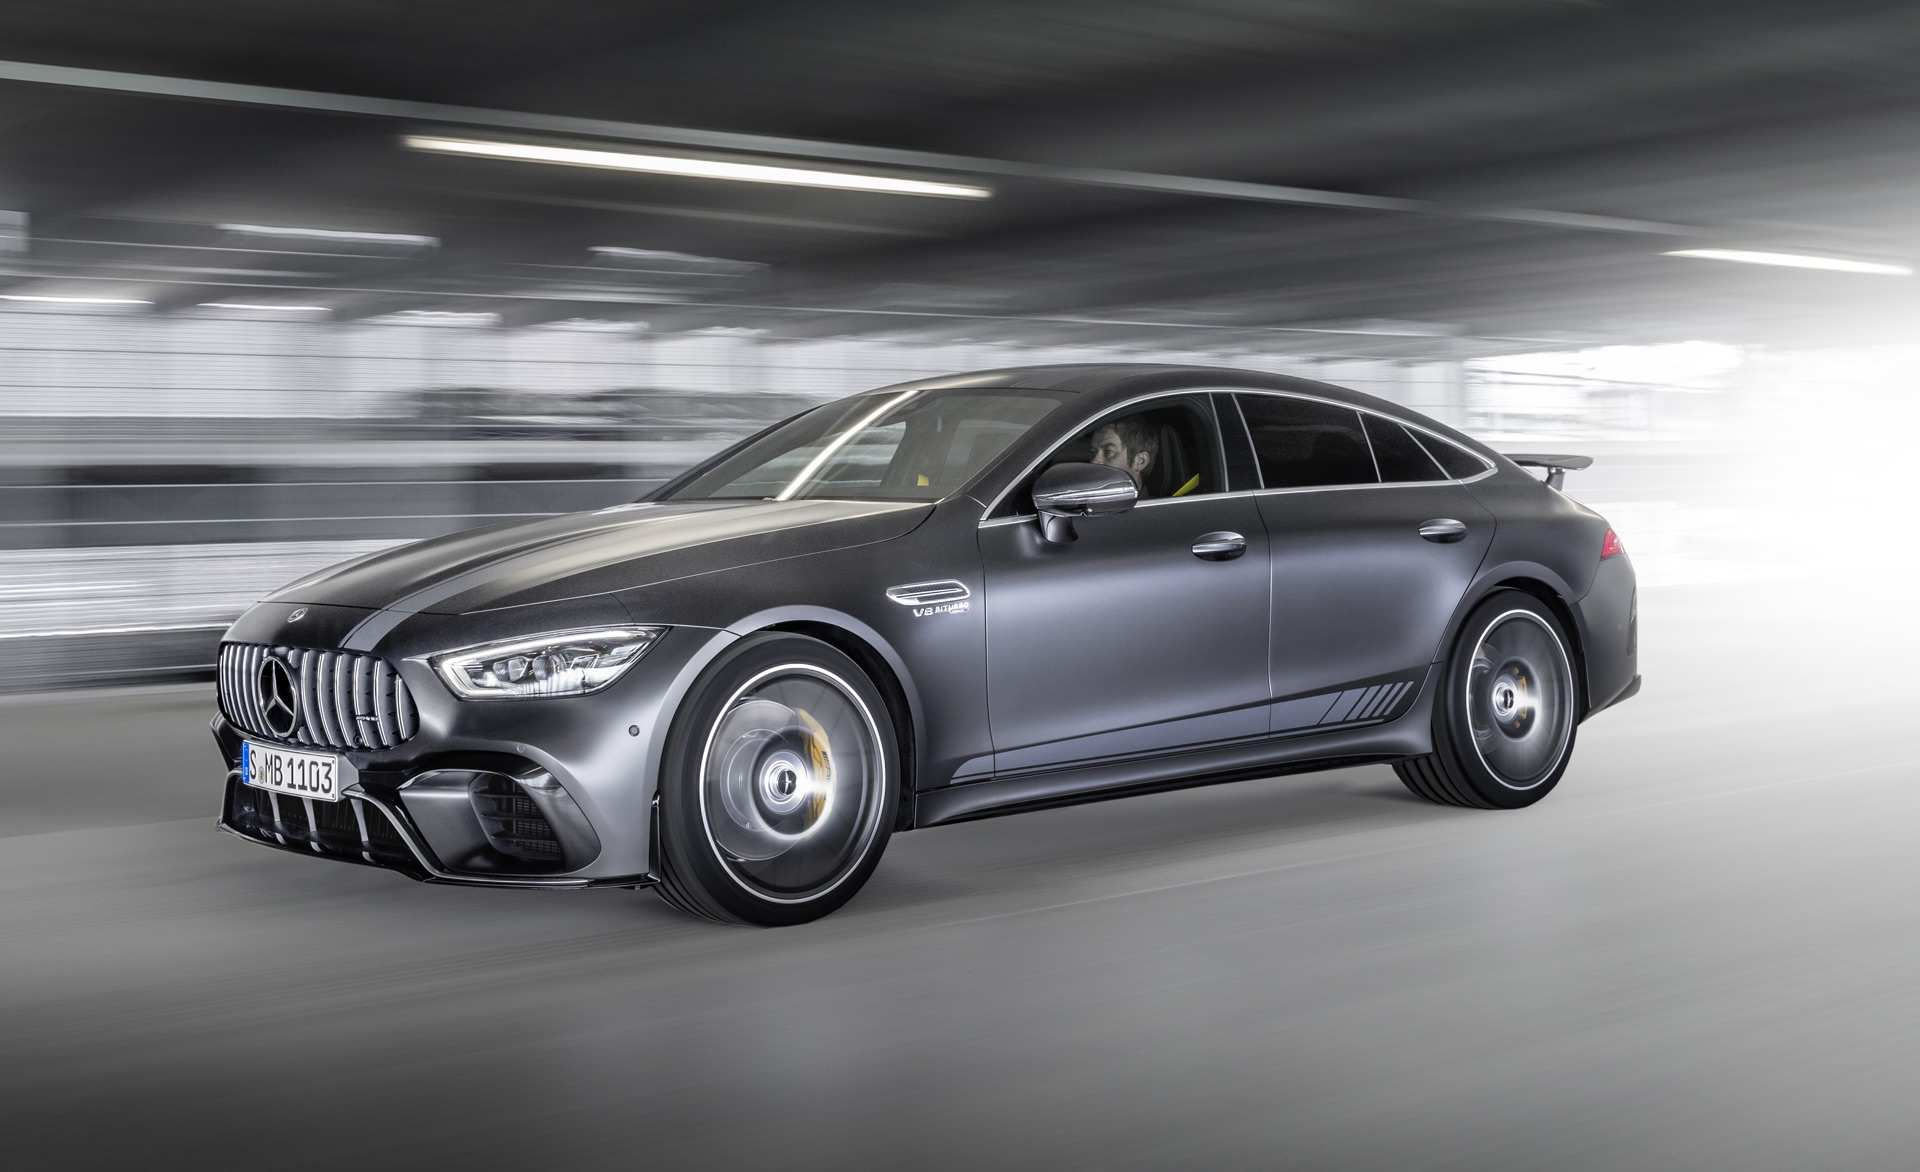 92 Gallery of New 2019 Mercedes Amg Gt 4 Door Coupe Price Exterior Pricing by New 2019 Mercedes Amg Gt 4 Door Coupe Price Exterior